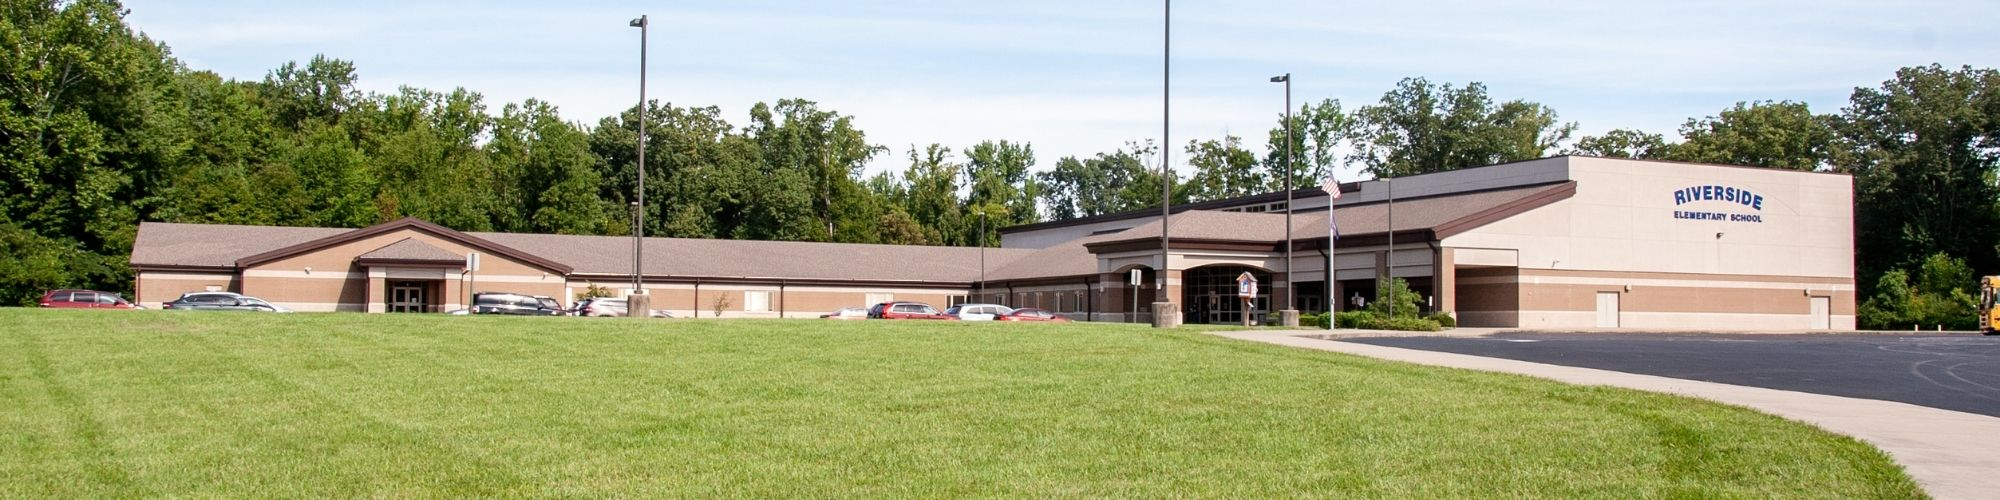 Riverside Elementary Exterior Building View